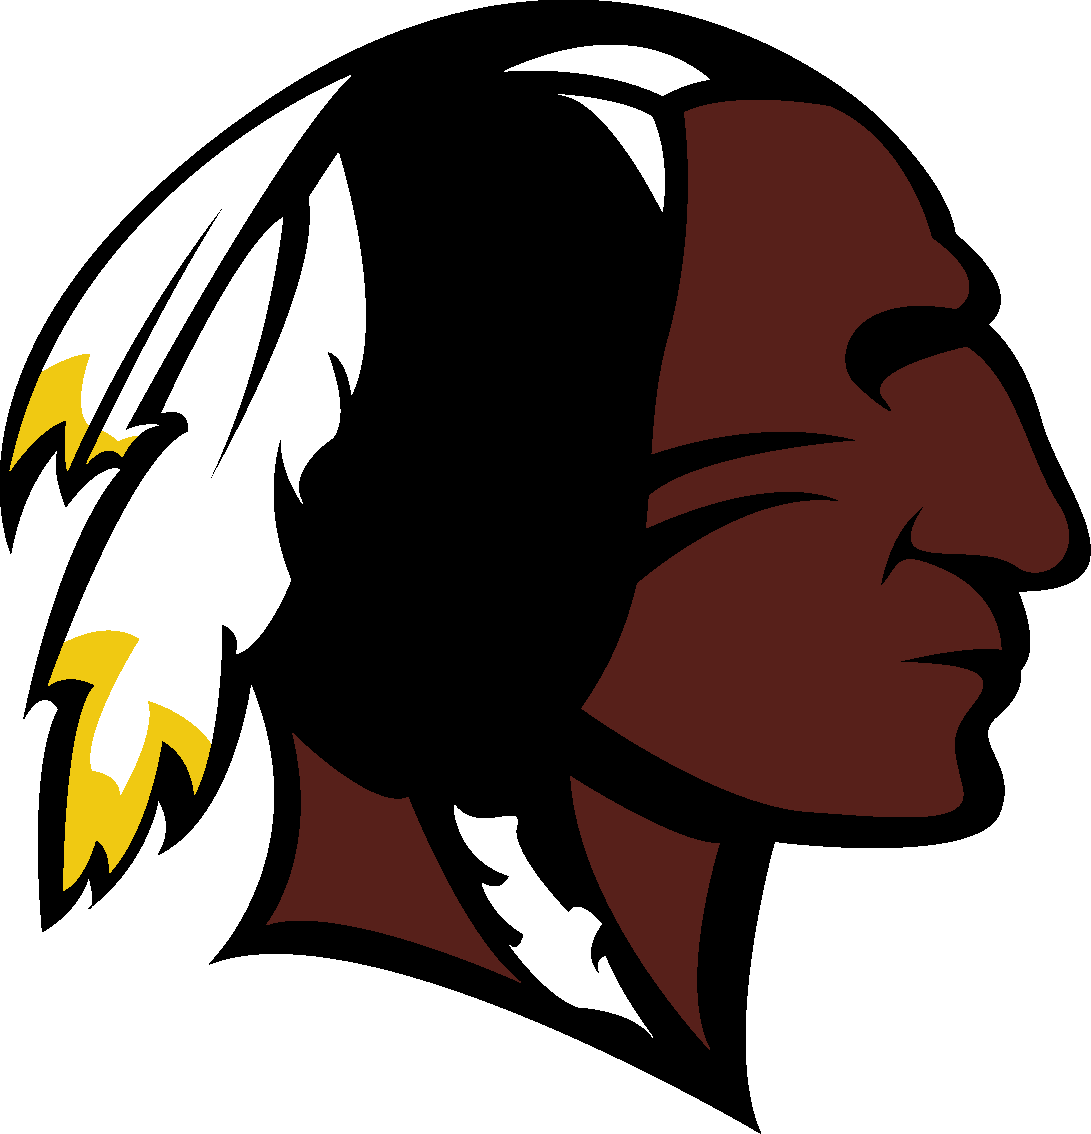 Redskins logo png. New washington concepts chris